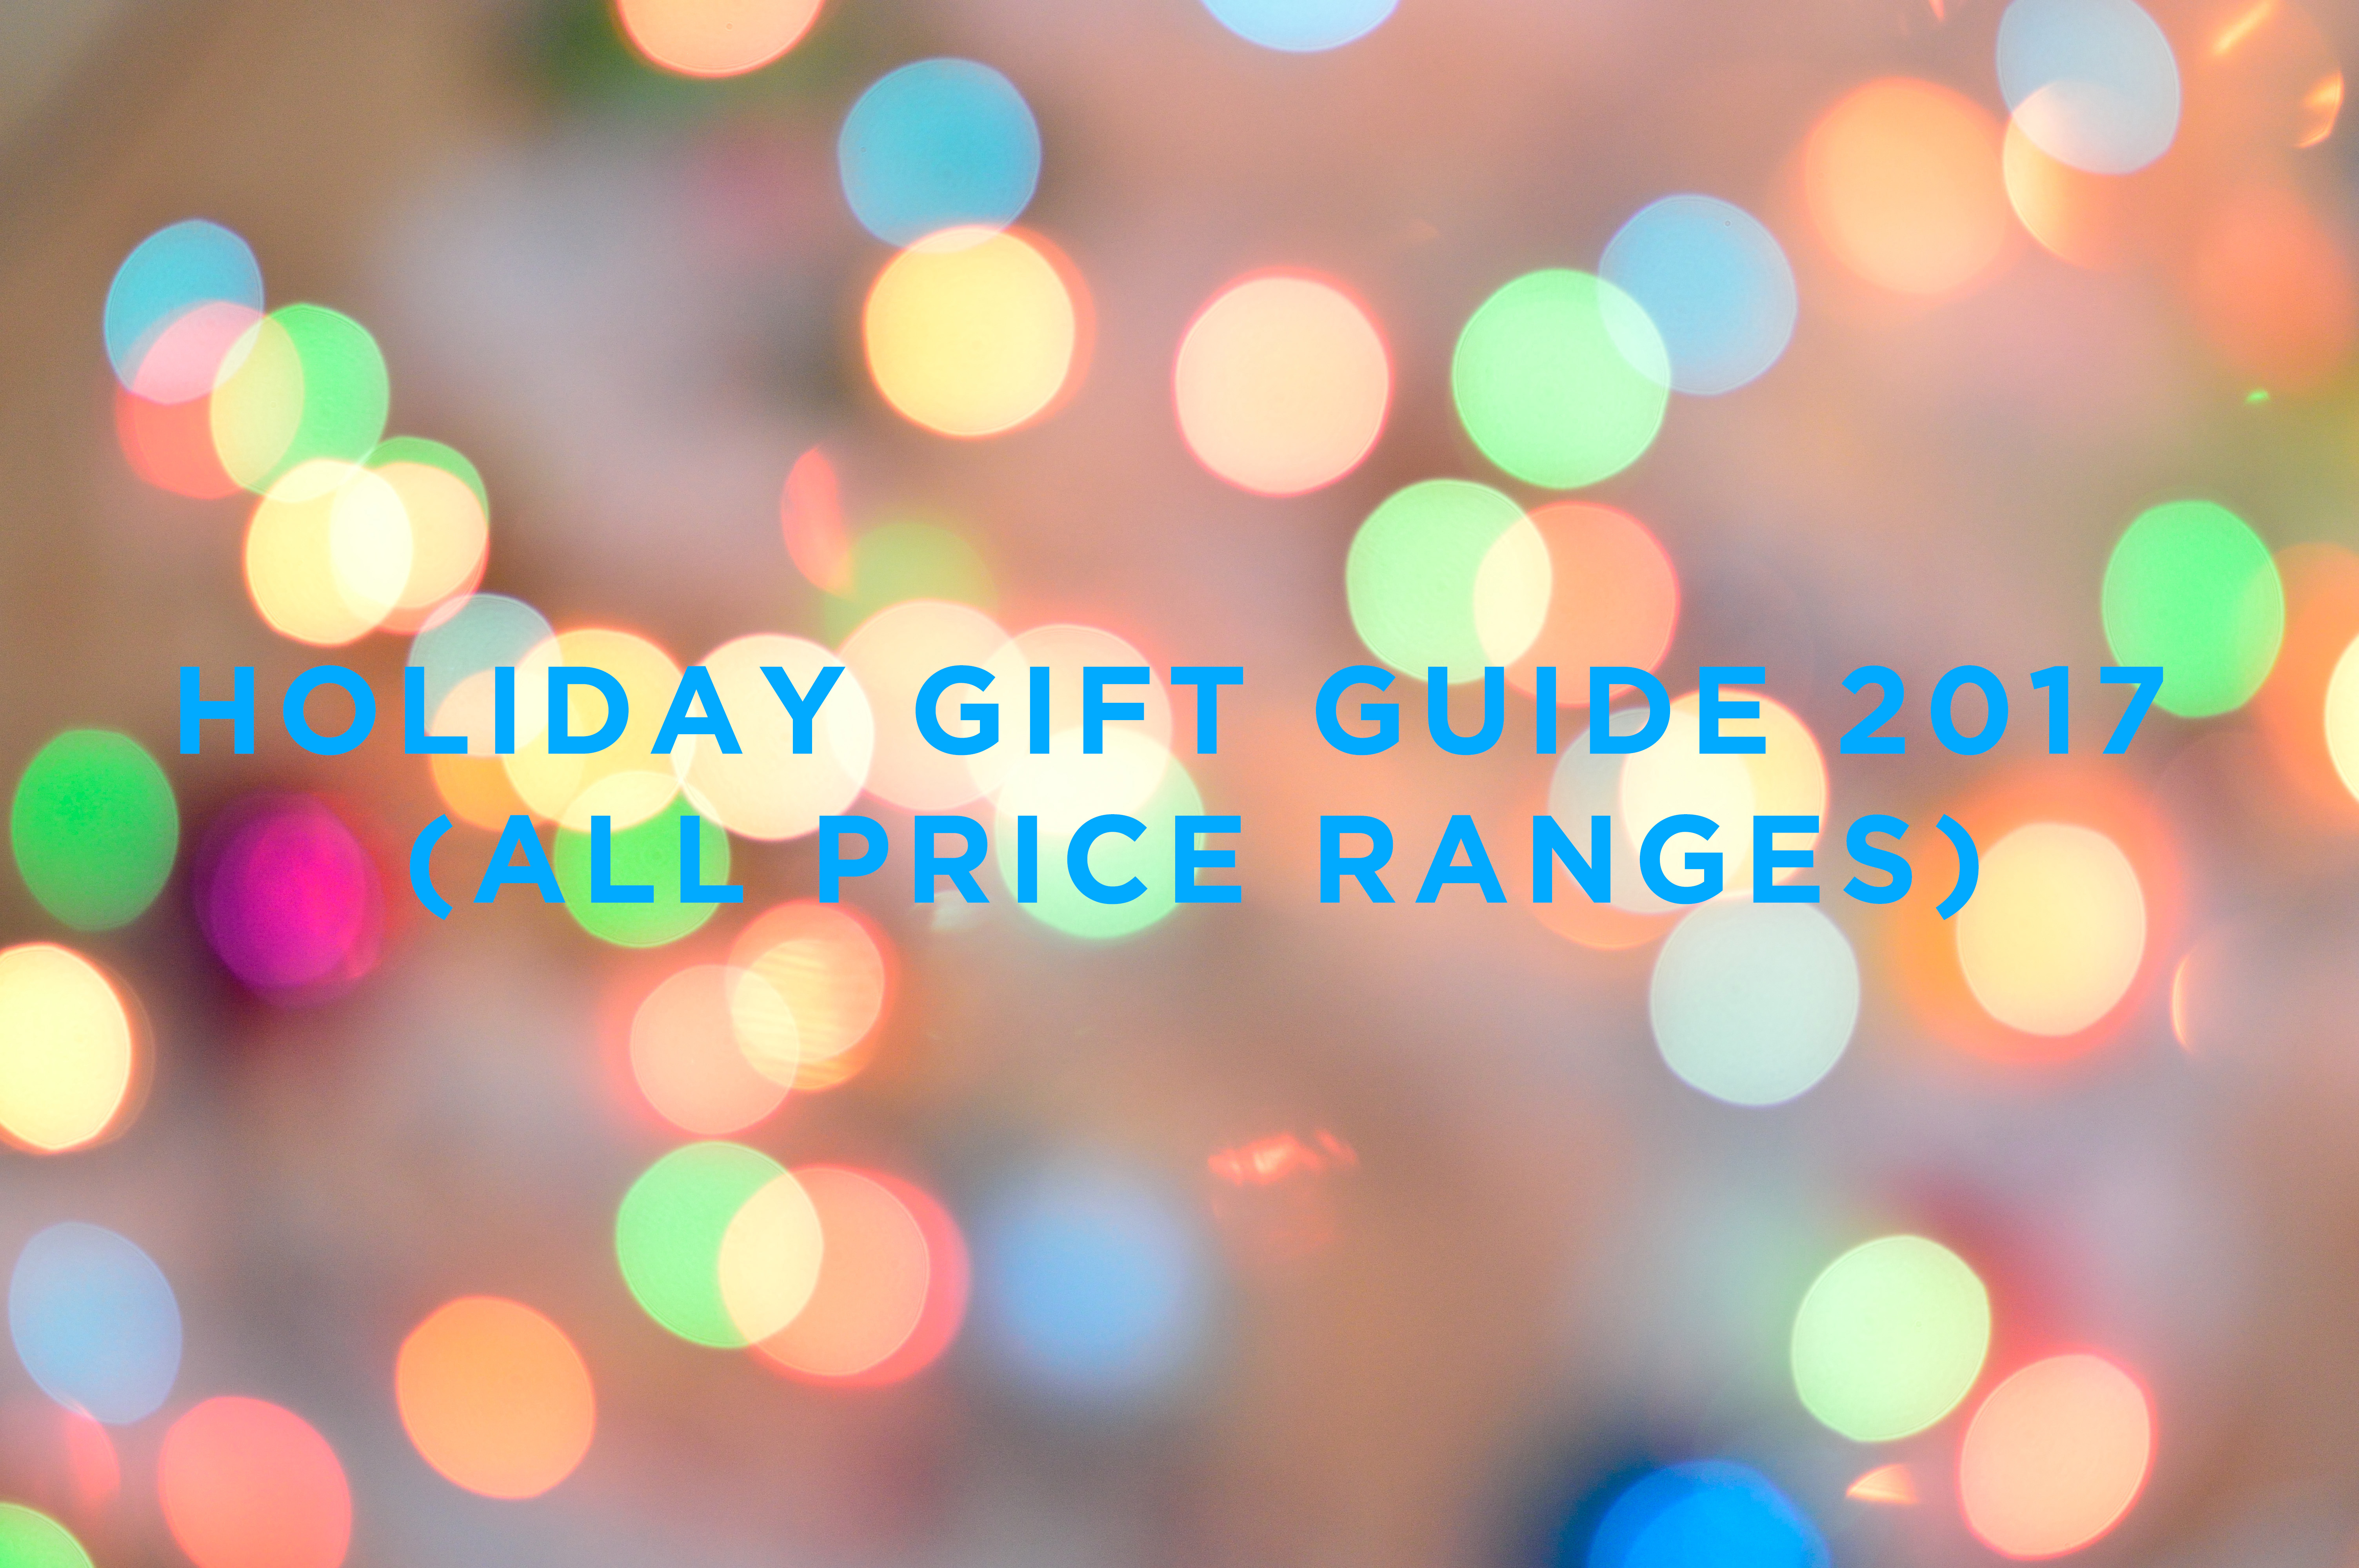 HOLIDAY GIFT GUIDE 2017 (ALL PRICE RANGES)